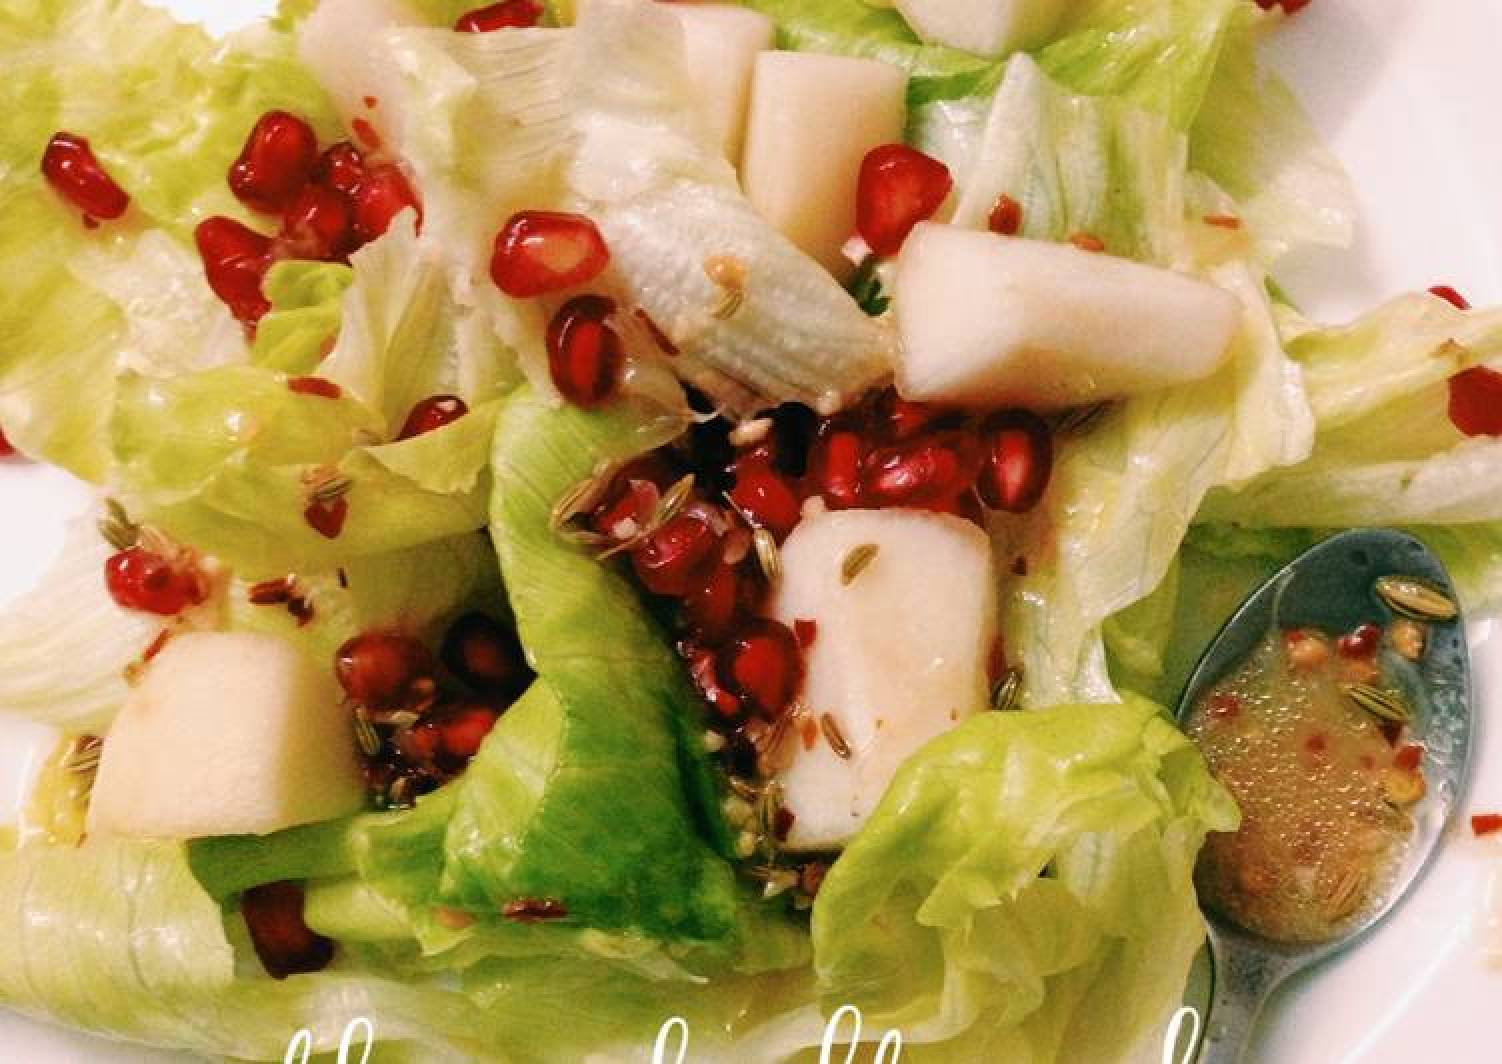 Pear Salad with Sweet lime/Mausambi Juice dressing